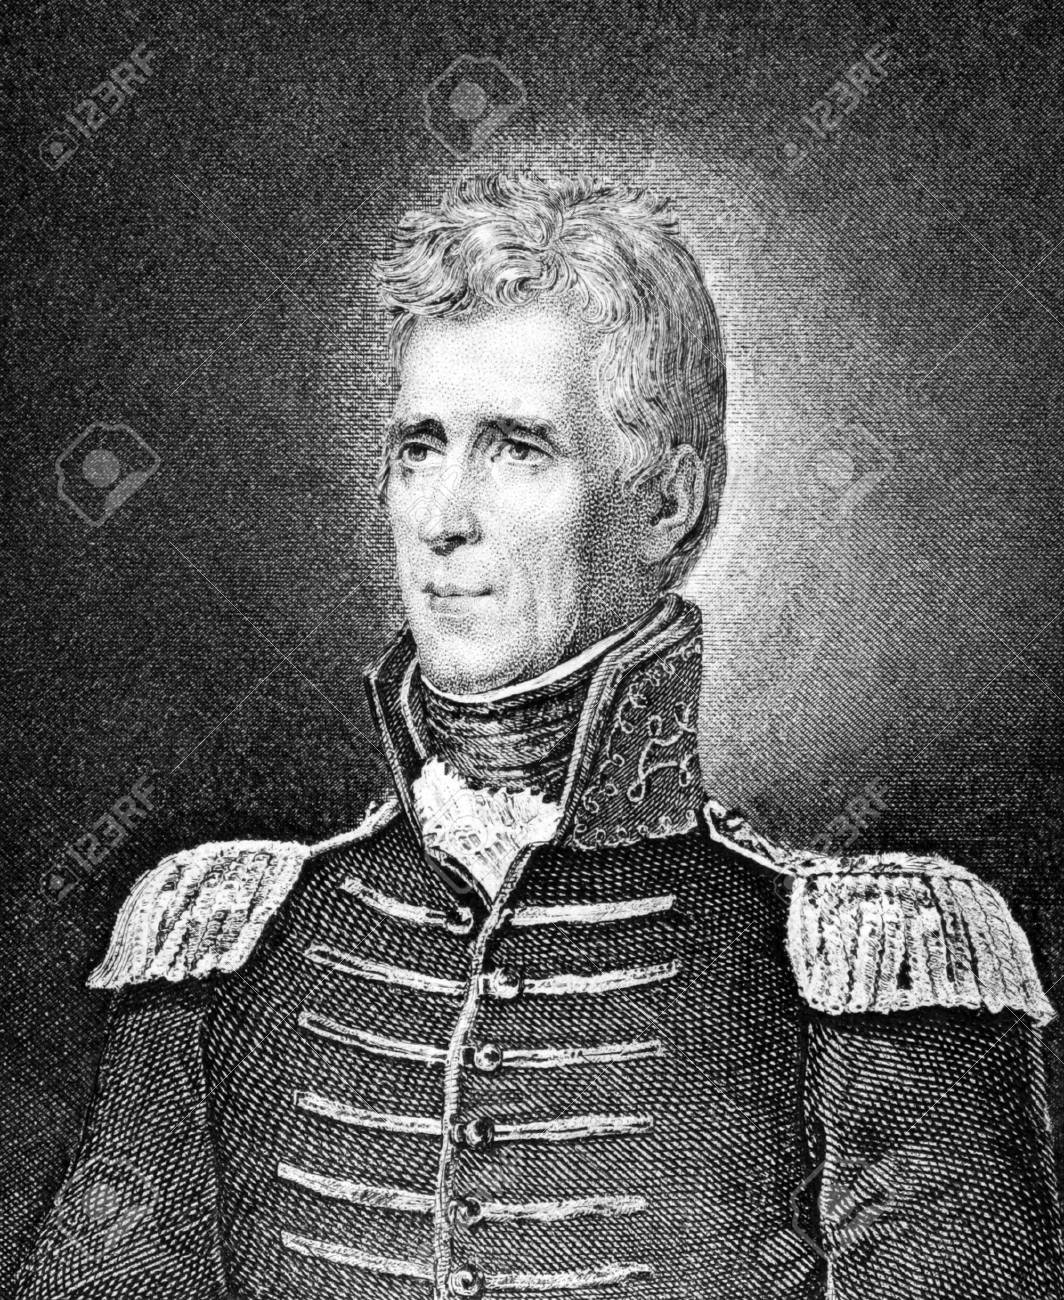 Andrew Jackson (1767-1845) on engraving from 1859. 7th President of the United States during 1829–1837. Engraved by unknown artist and published in Meyers Konversations-Lexikon, Germany,1859. Stock Photo - 15111518